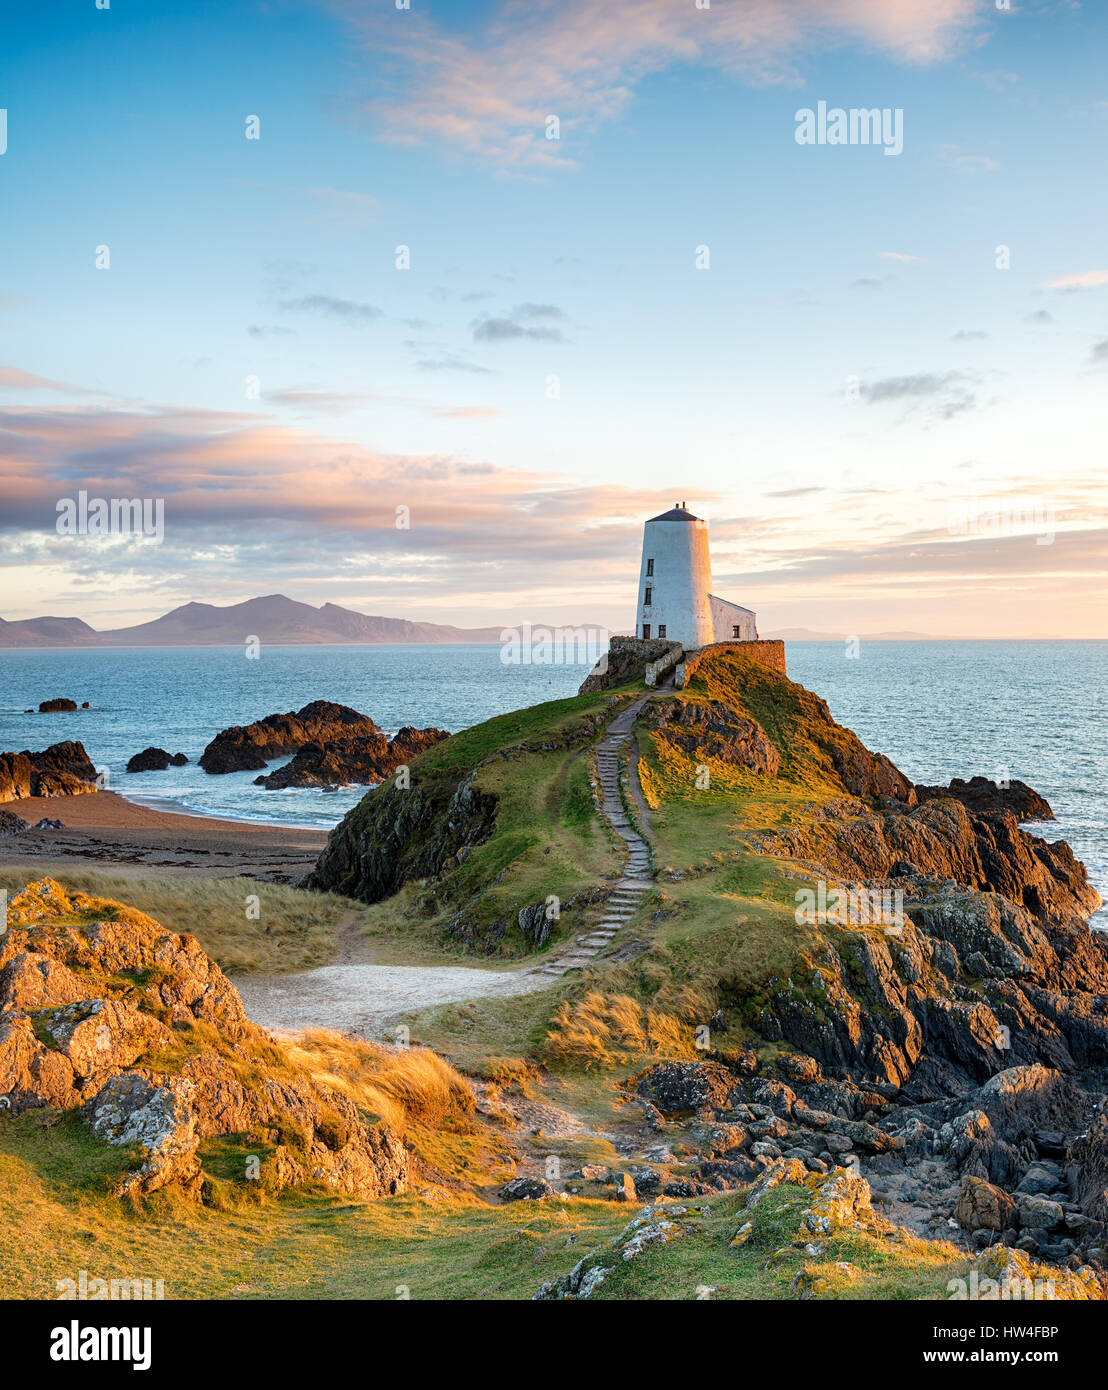 The stunningly beautiful Llanddwyn Island on the coast of Anglesey in north Wales - Stock Image